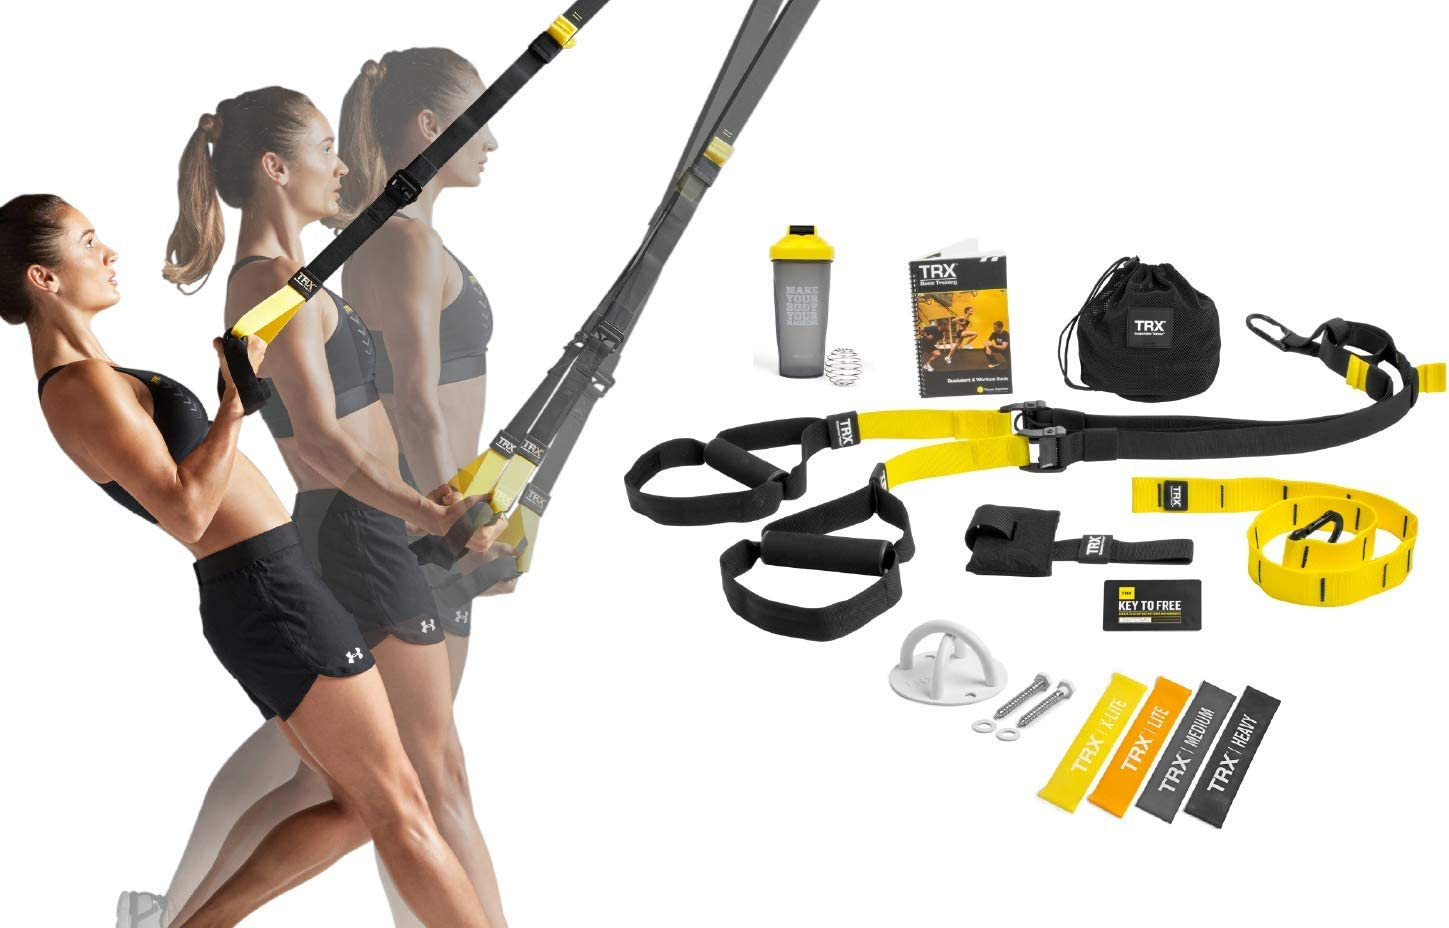 TRX All In One Home Gym Bundle: Includes All-In-One Suspension Trainer, Indoor & Outdoor Anchors, TRX XMount Wall Anchor, 4 Exercise Bands & Shaker Bottle?